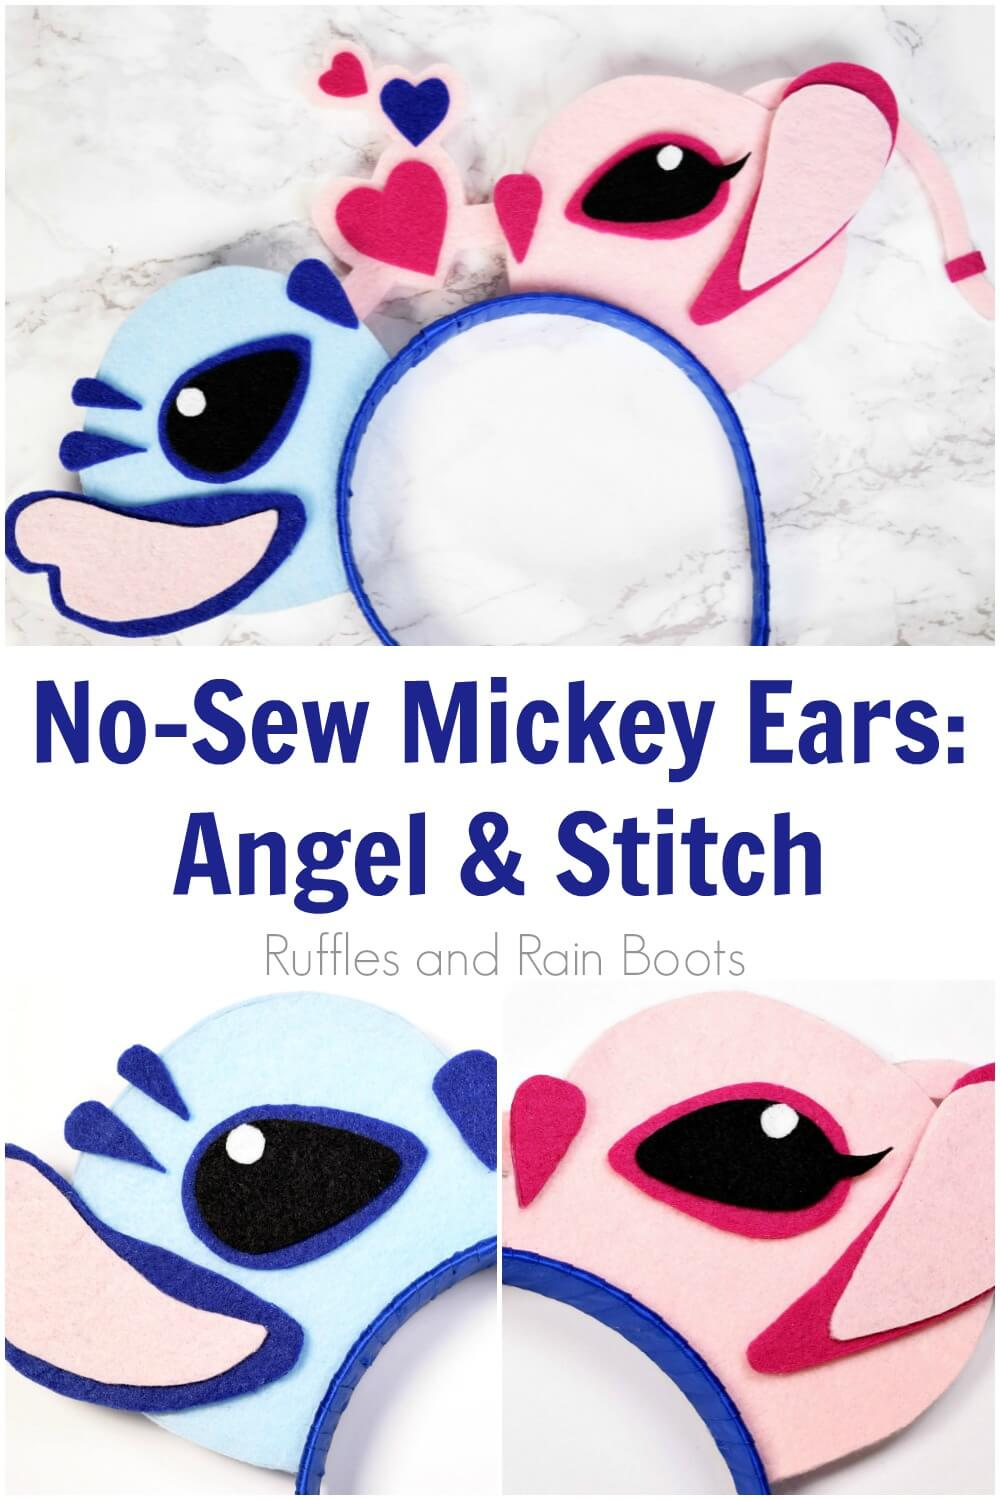 photo collage of felt Lilo and Stitch characters with text which reads no-sew Mickey ears Angel and Stitch